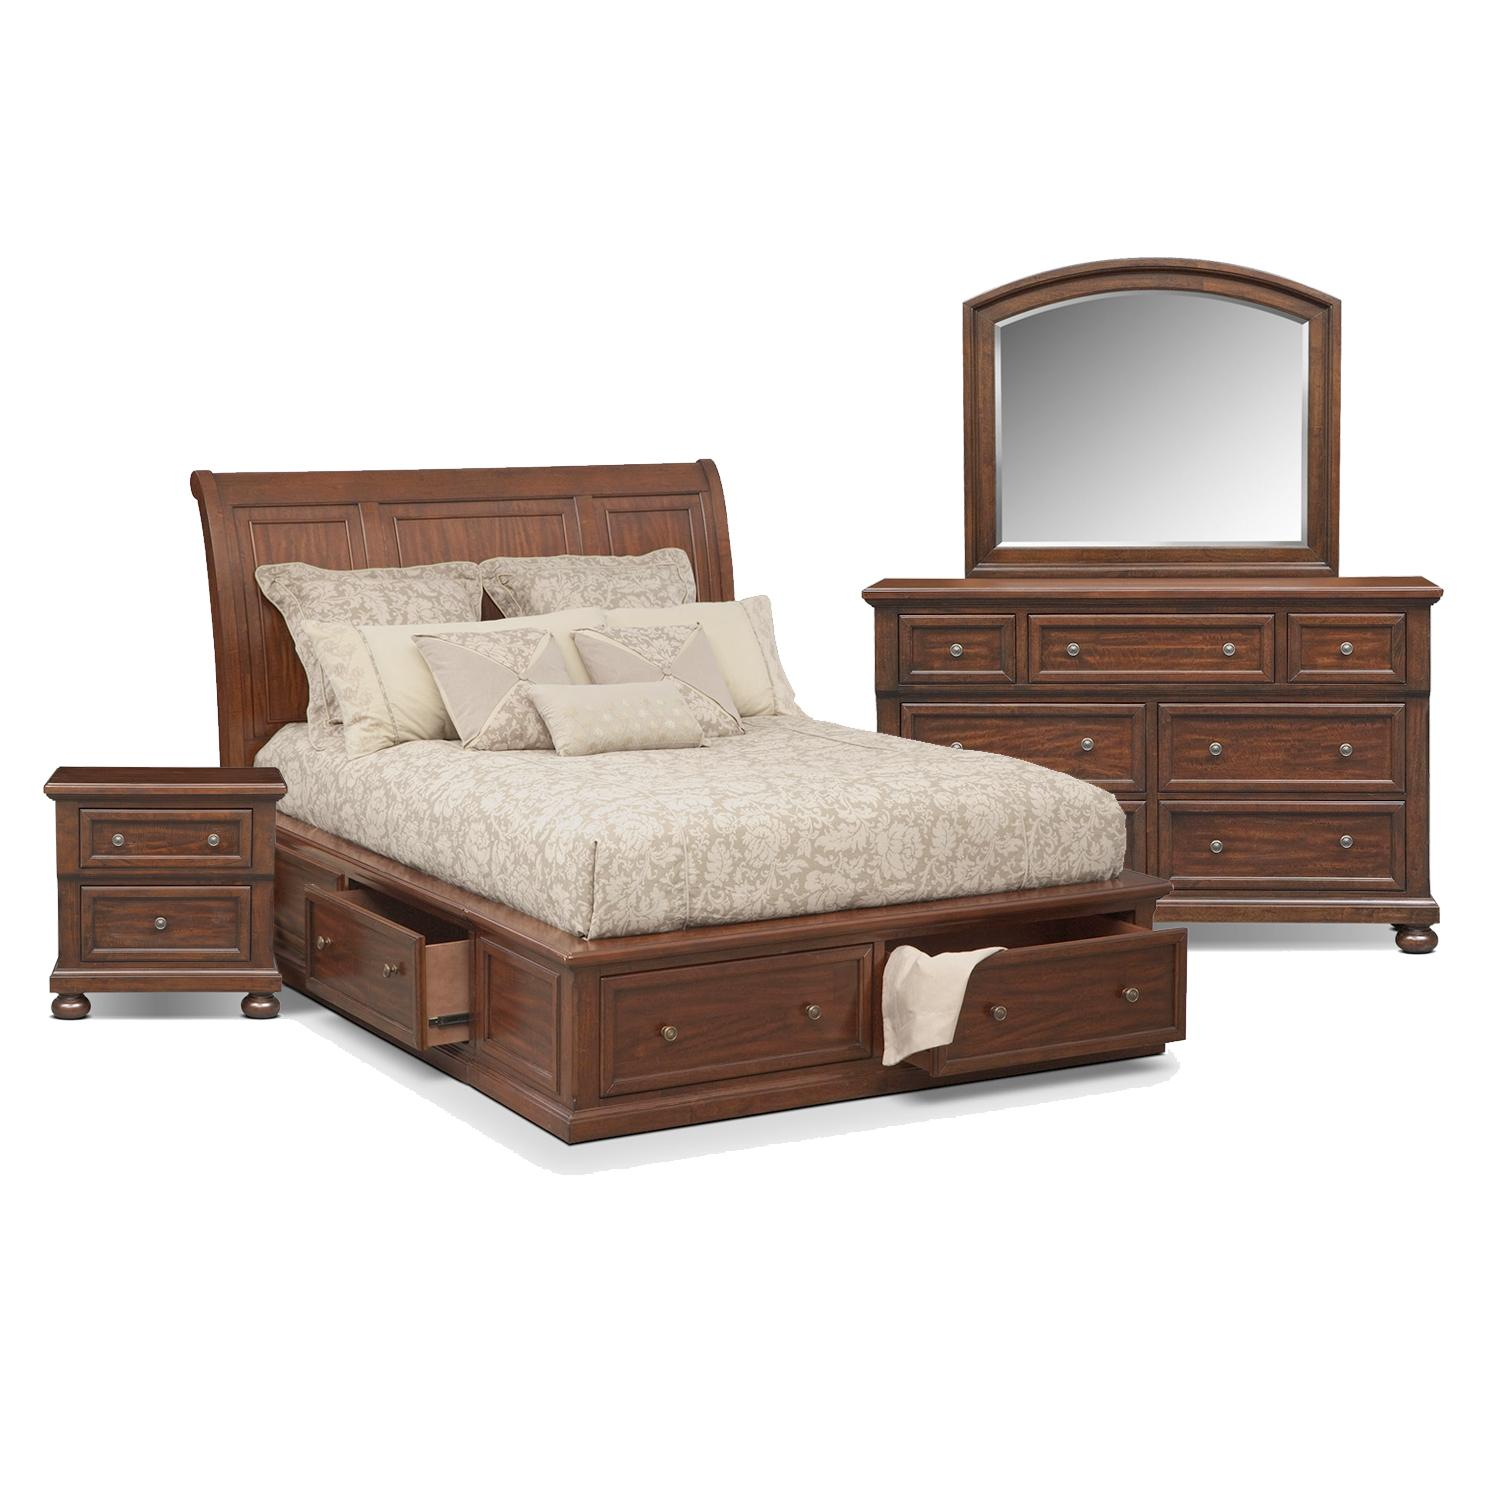 Furniture Images Mesmerizing Bedroom Furniture  Value City Furniture Inspiration Design